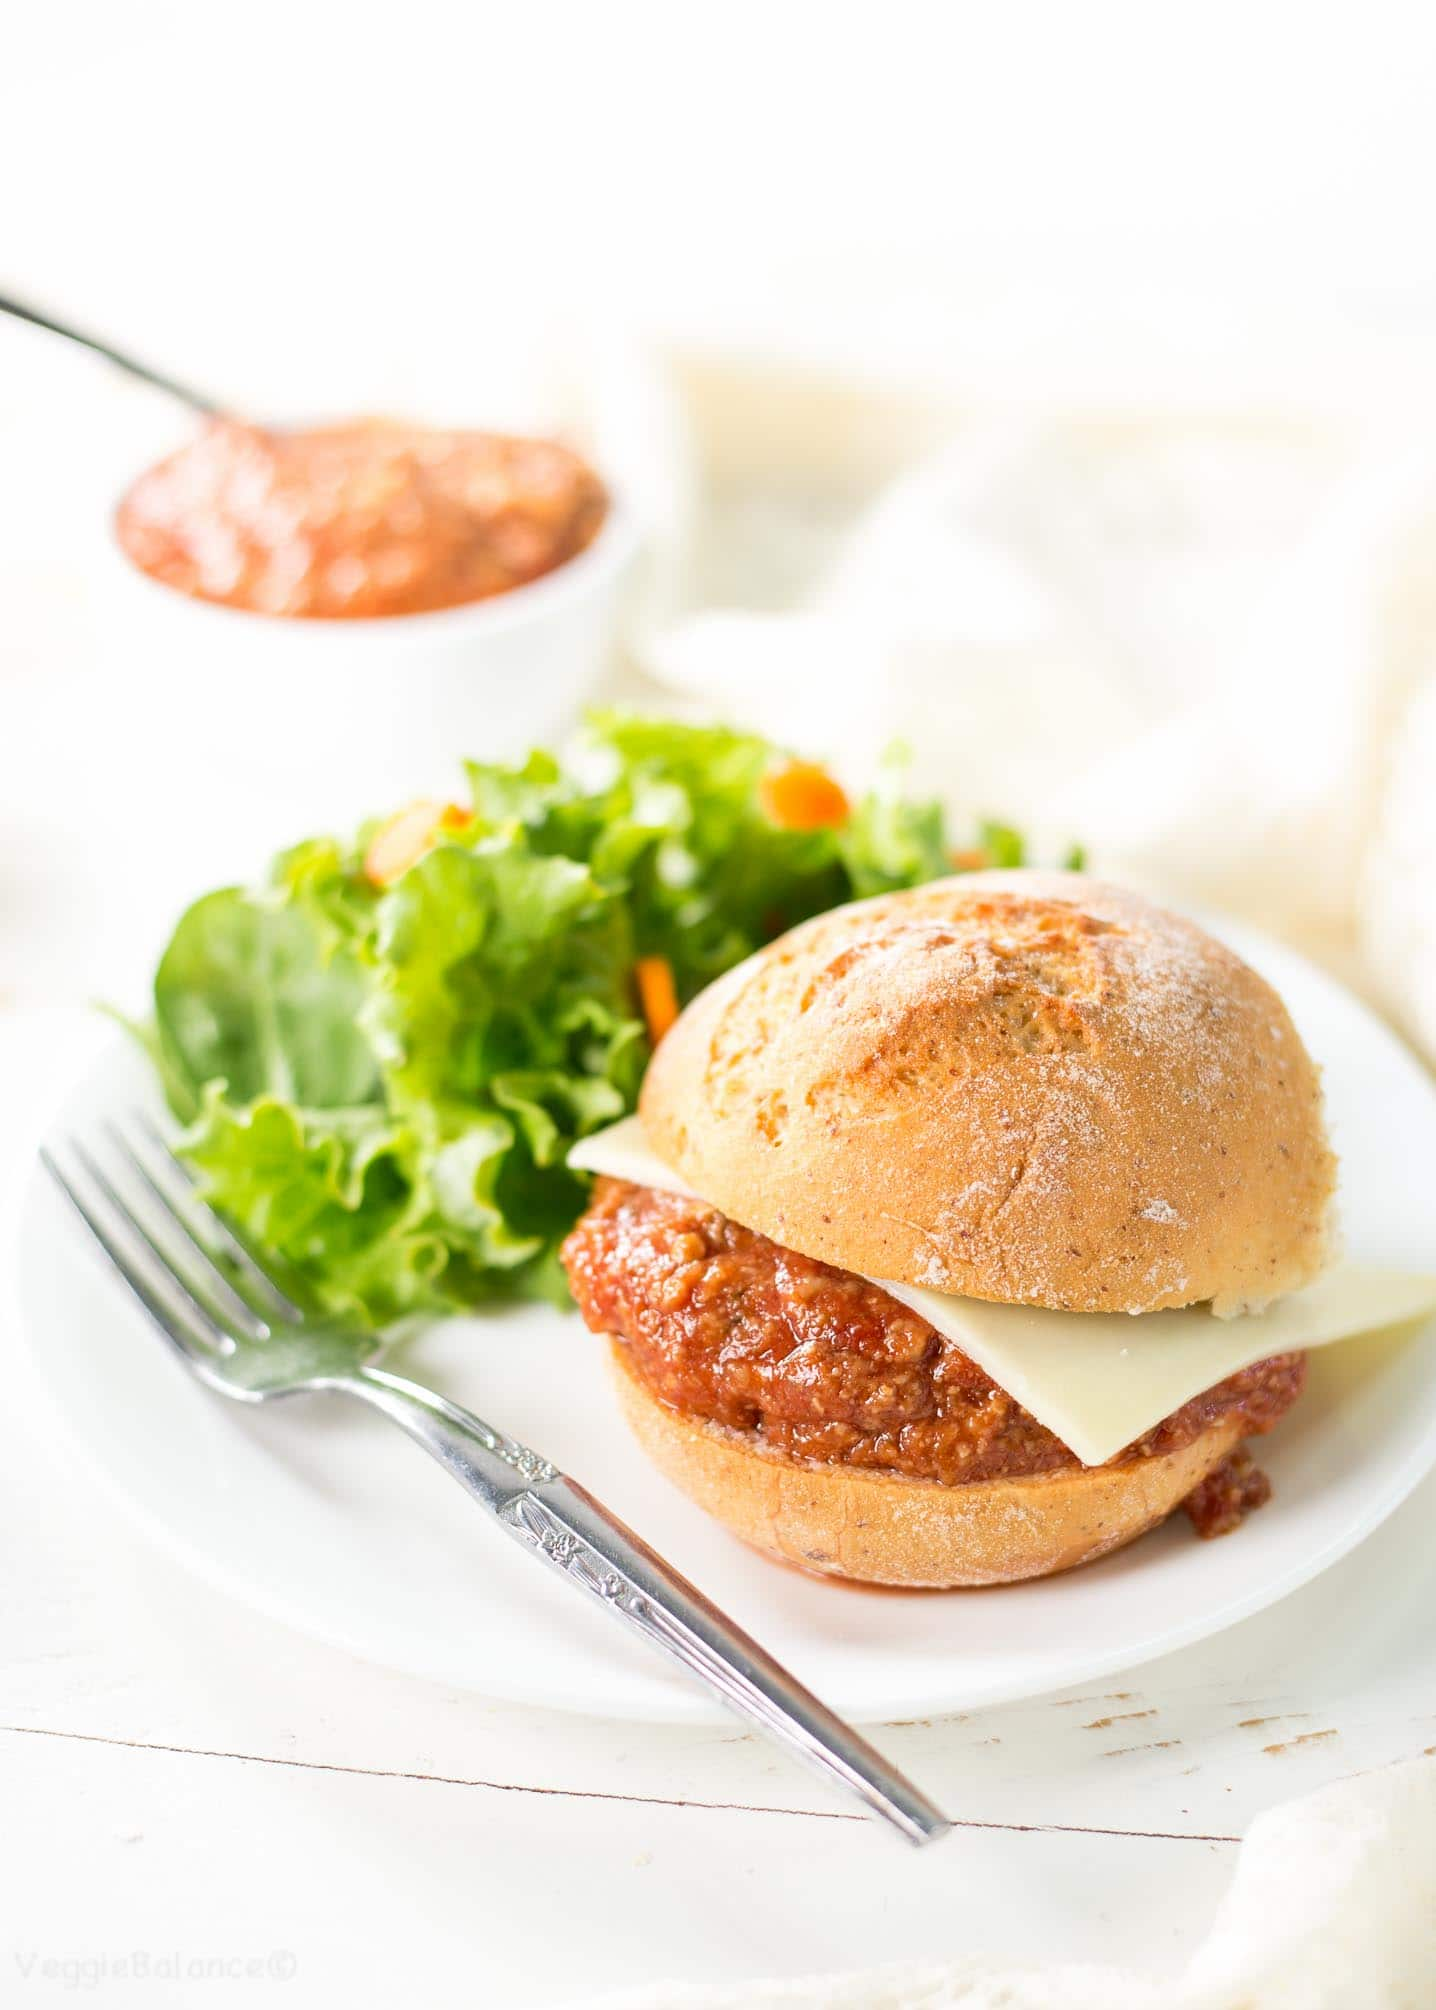 Vegetarian Sloppy Joes recipe on gluten-free bun